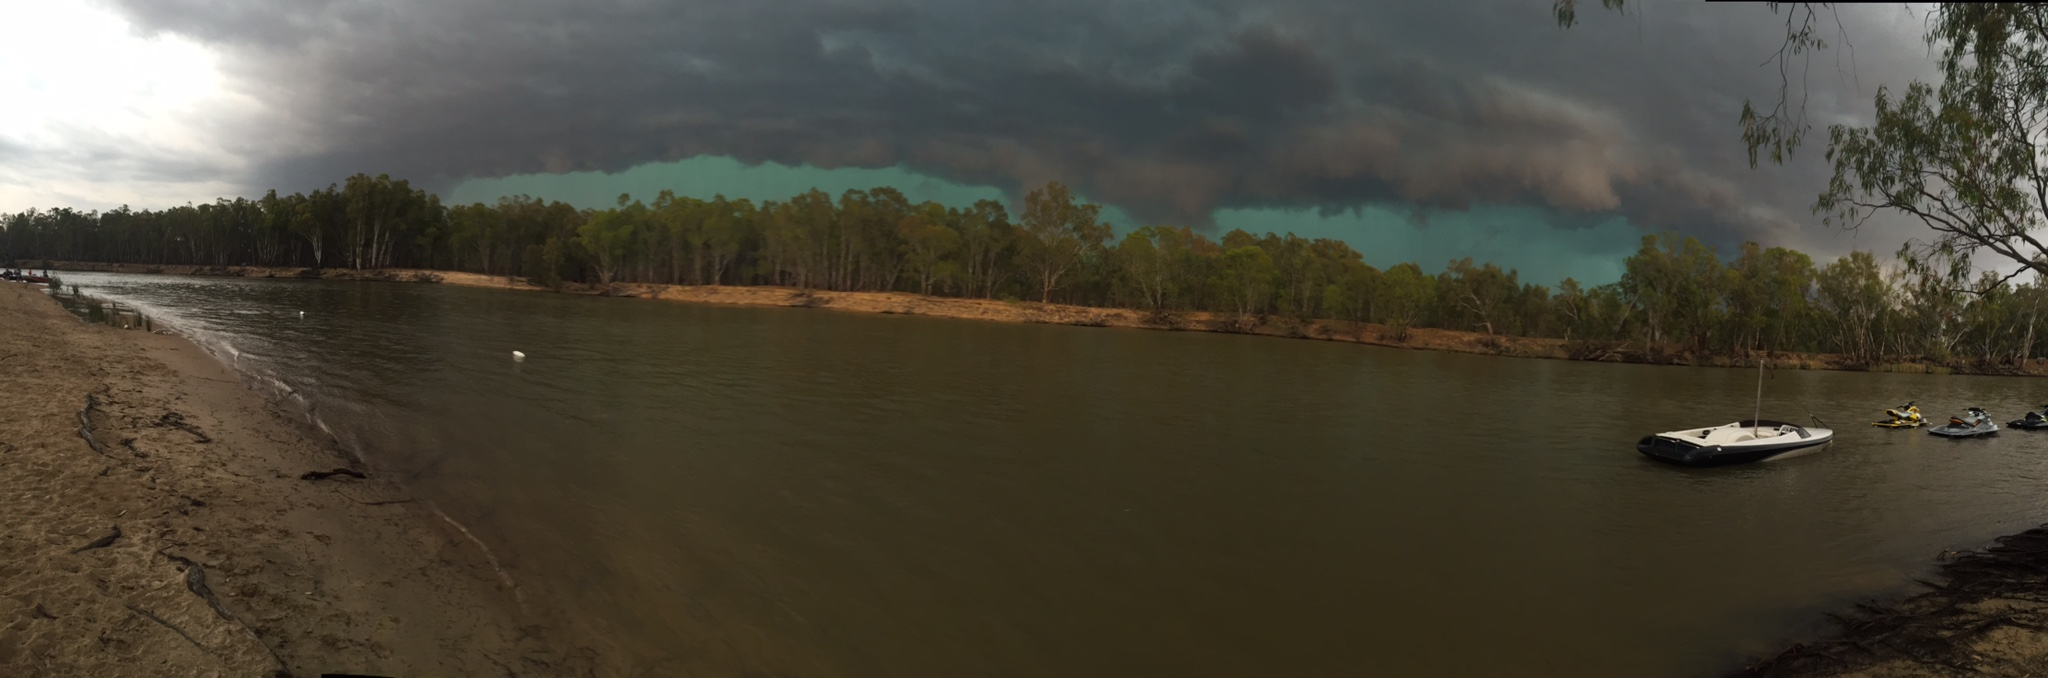 The-Storm-over-the-river